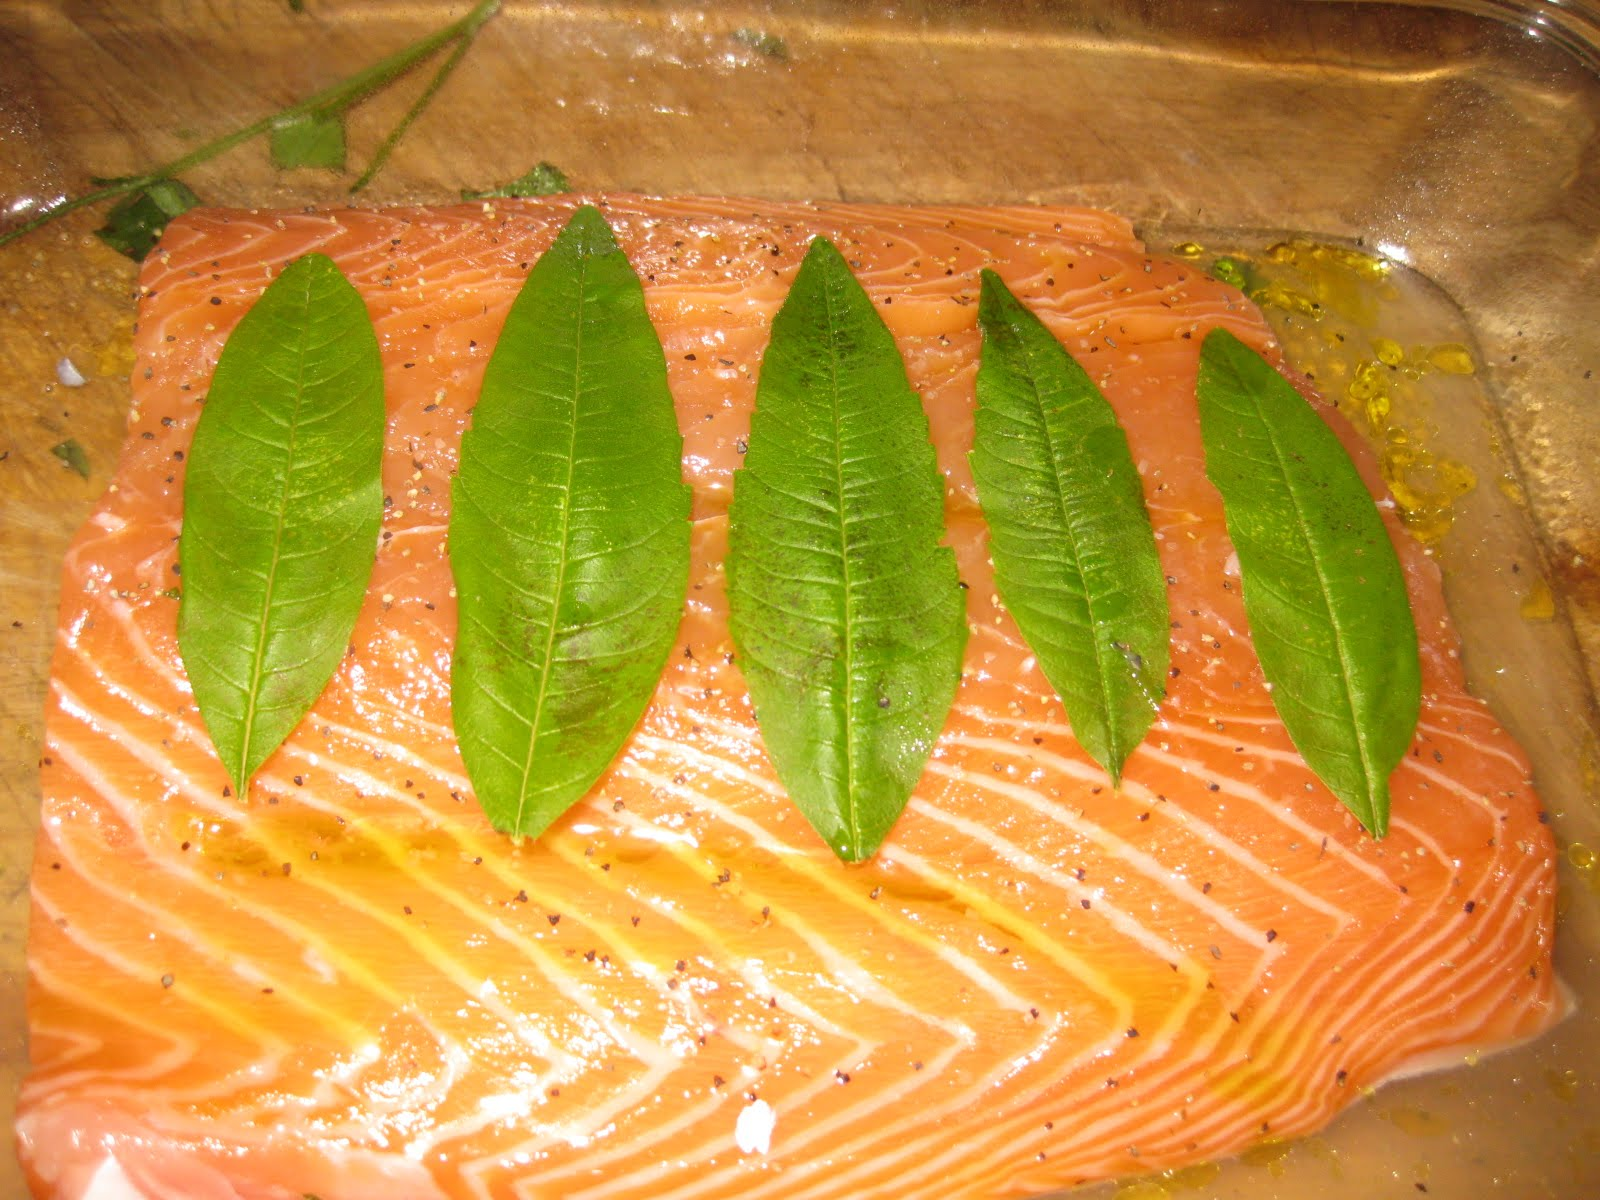 Salmon, Oven-Steamed in Lemon Verbena & Pinot Grigio